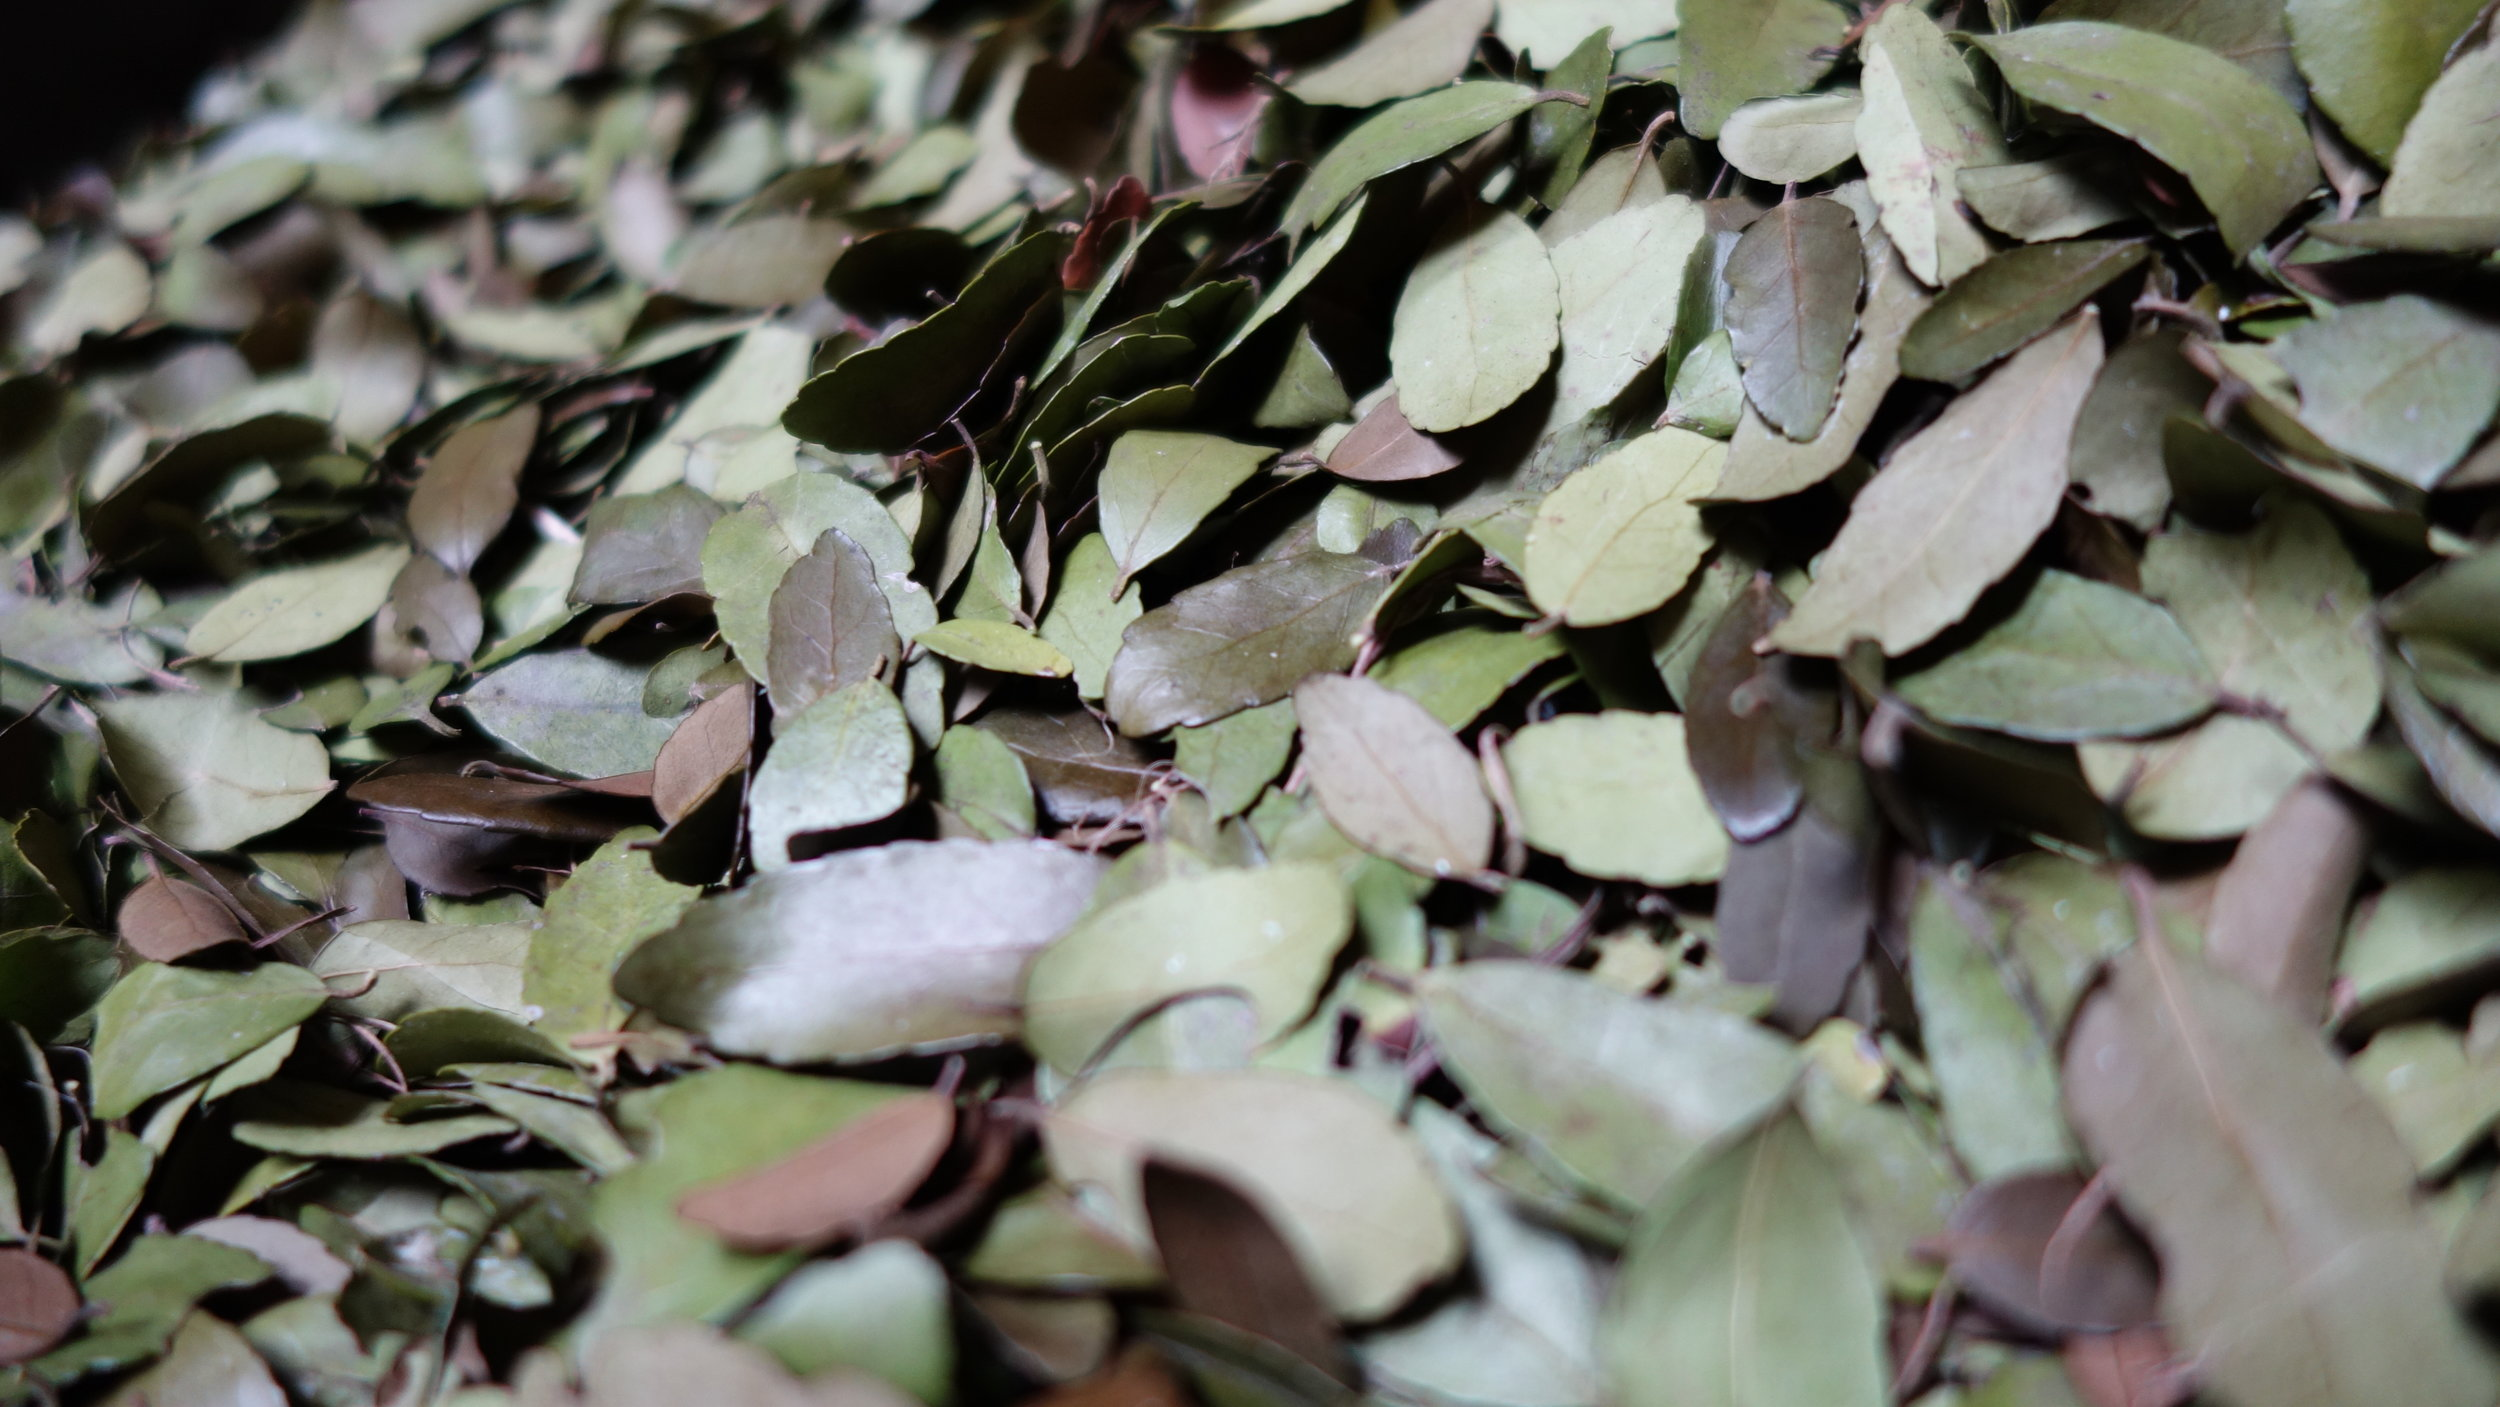 Fresh Yaupon Tea leaves drying, waiting to become delicious Wimberley Tea Company Yaupon Tea.